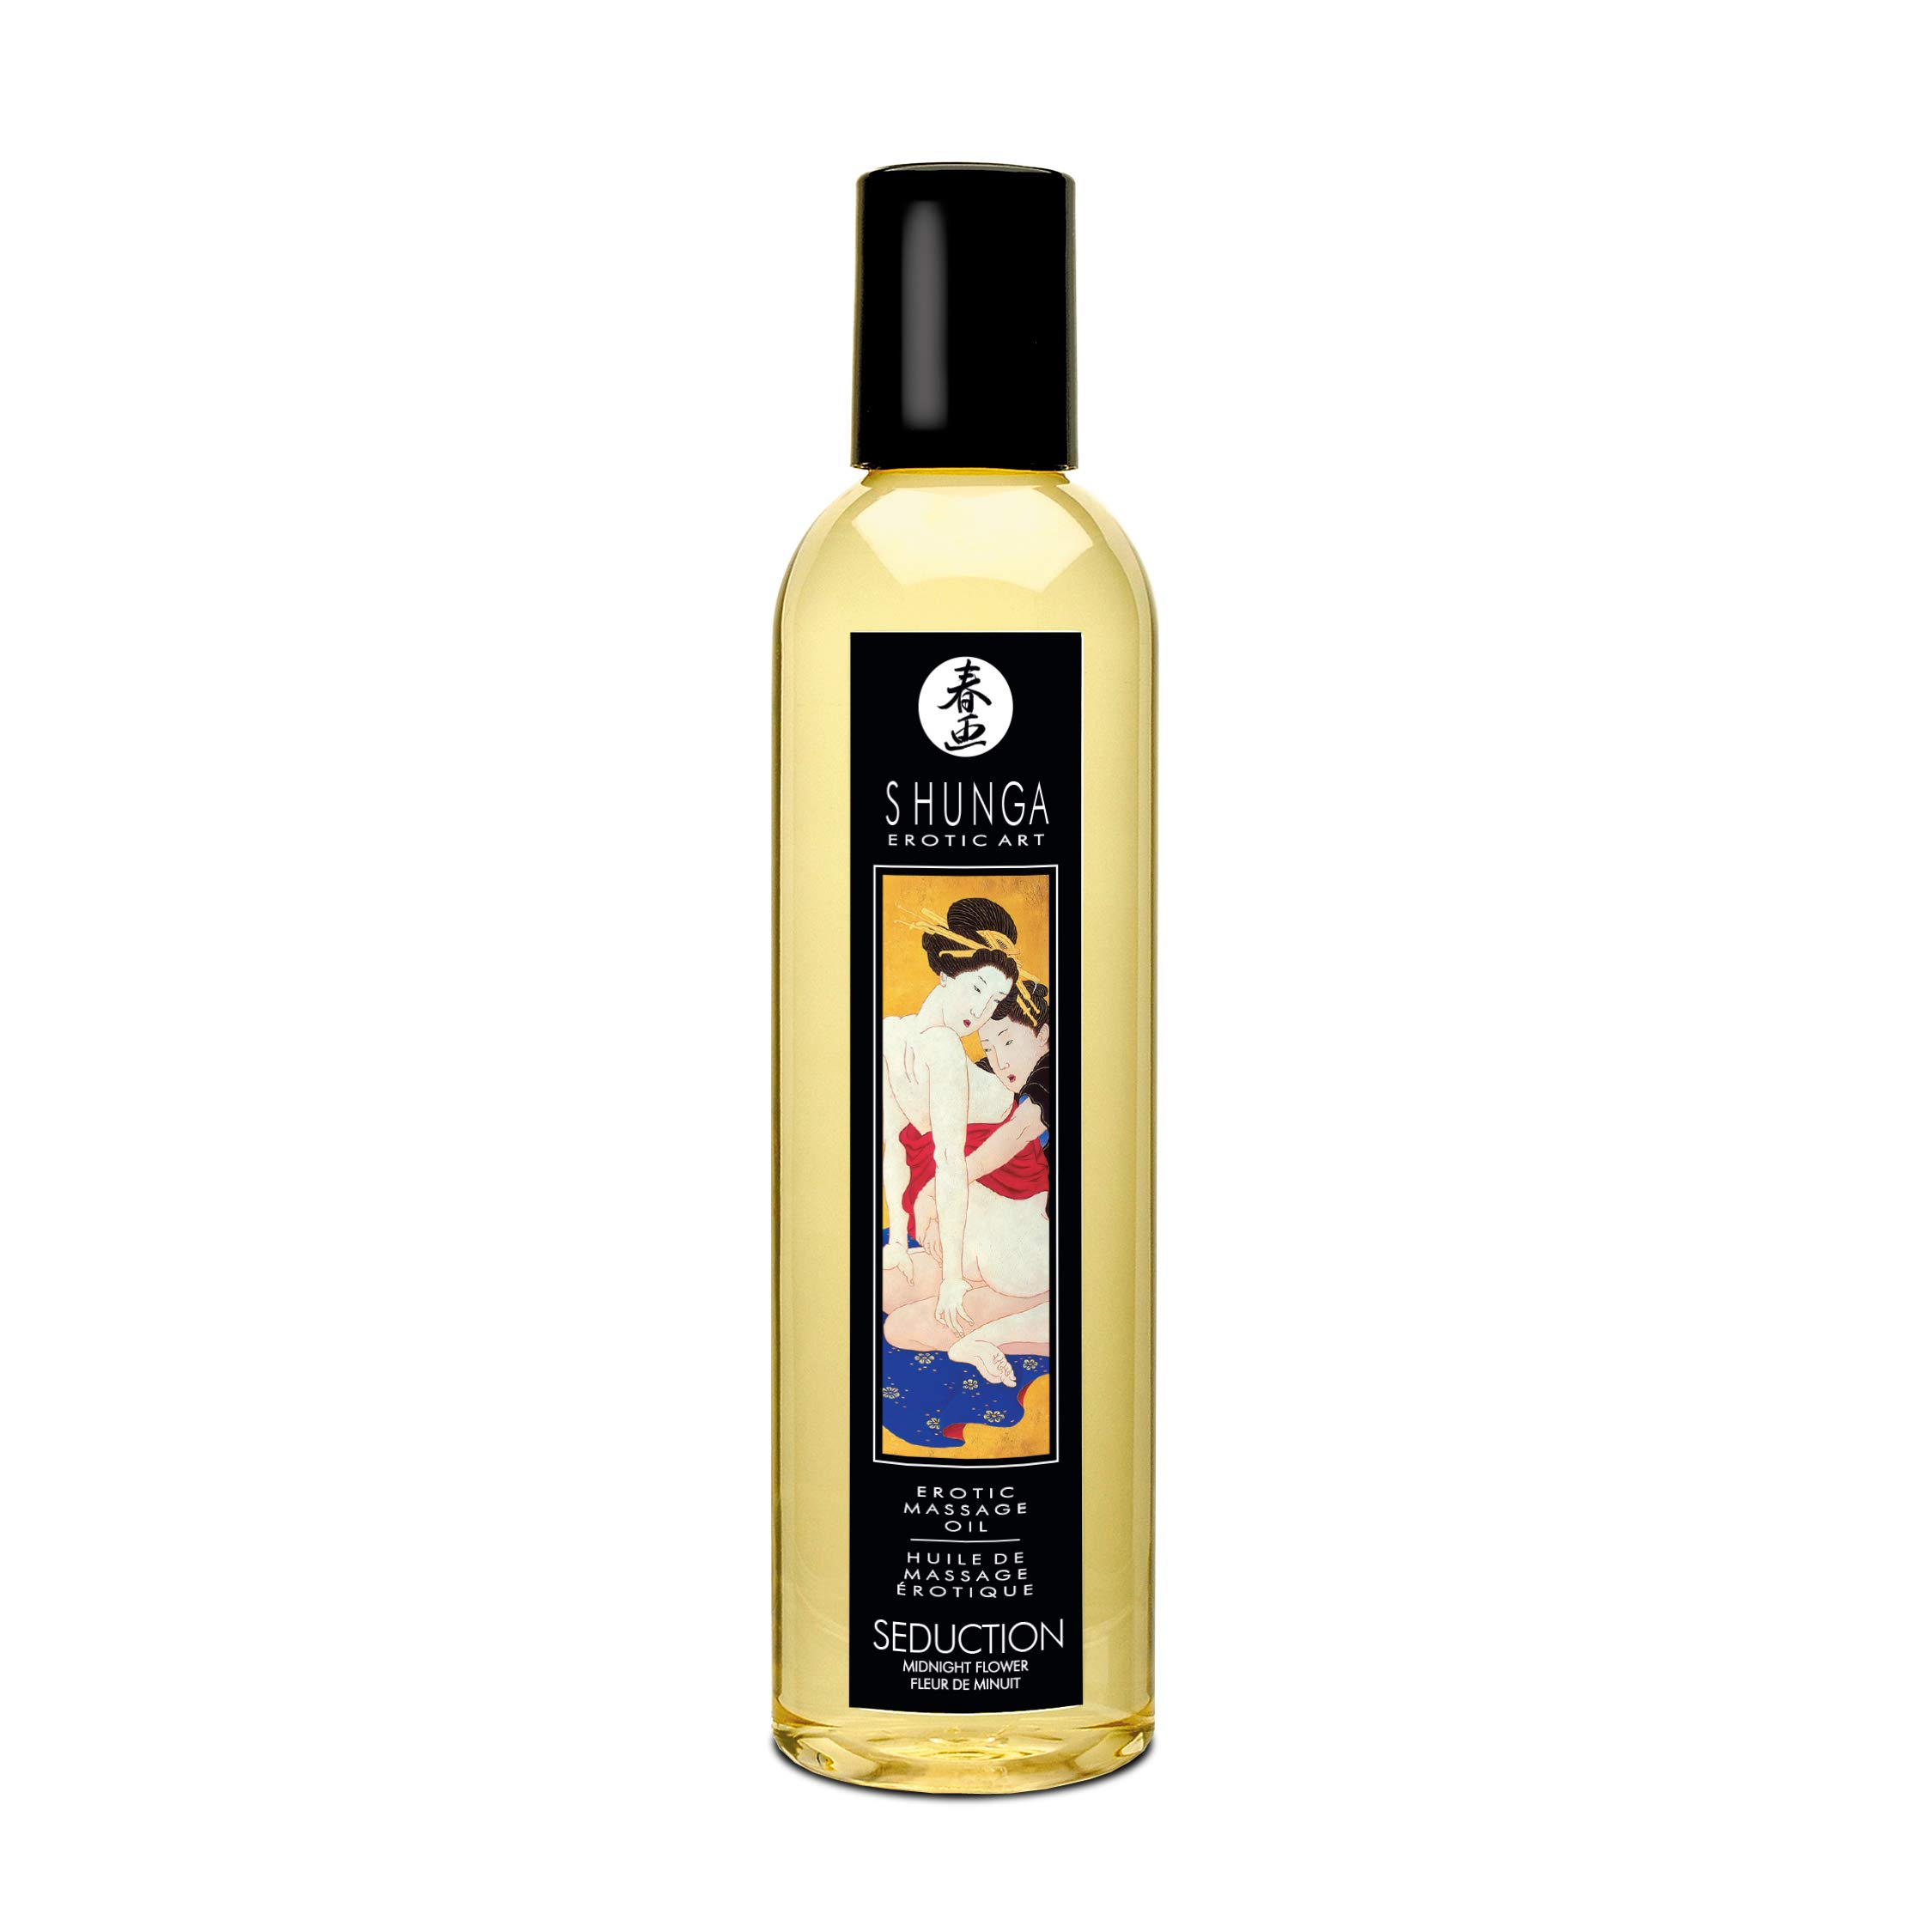 Shunga Erotic Massage Oil 8.4 Fluid Ounces (Asian Midnight Flower Seduction) by Shunga Erotic Art